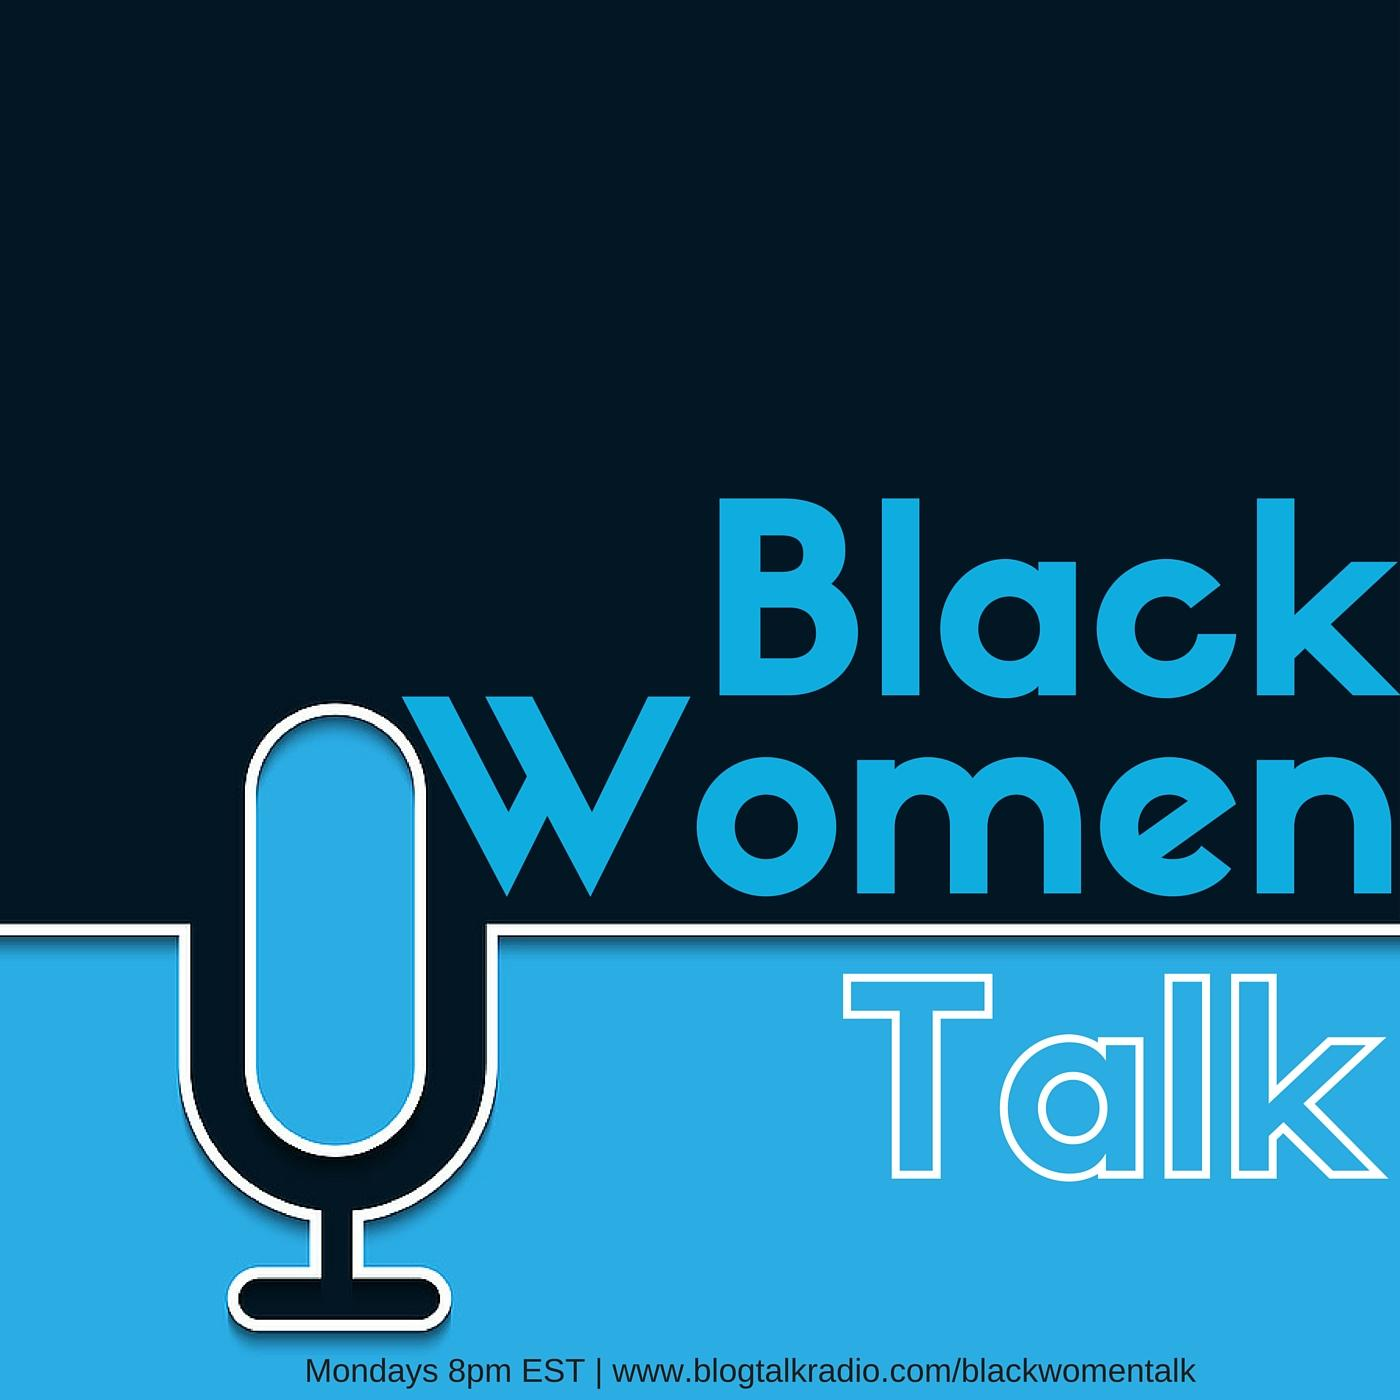 Black Women Talk